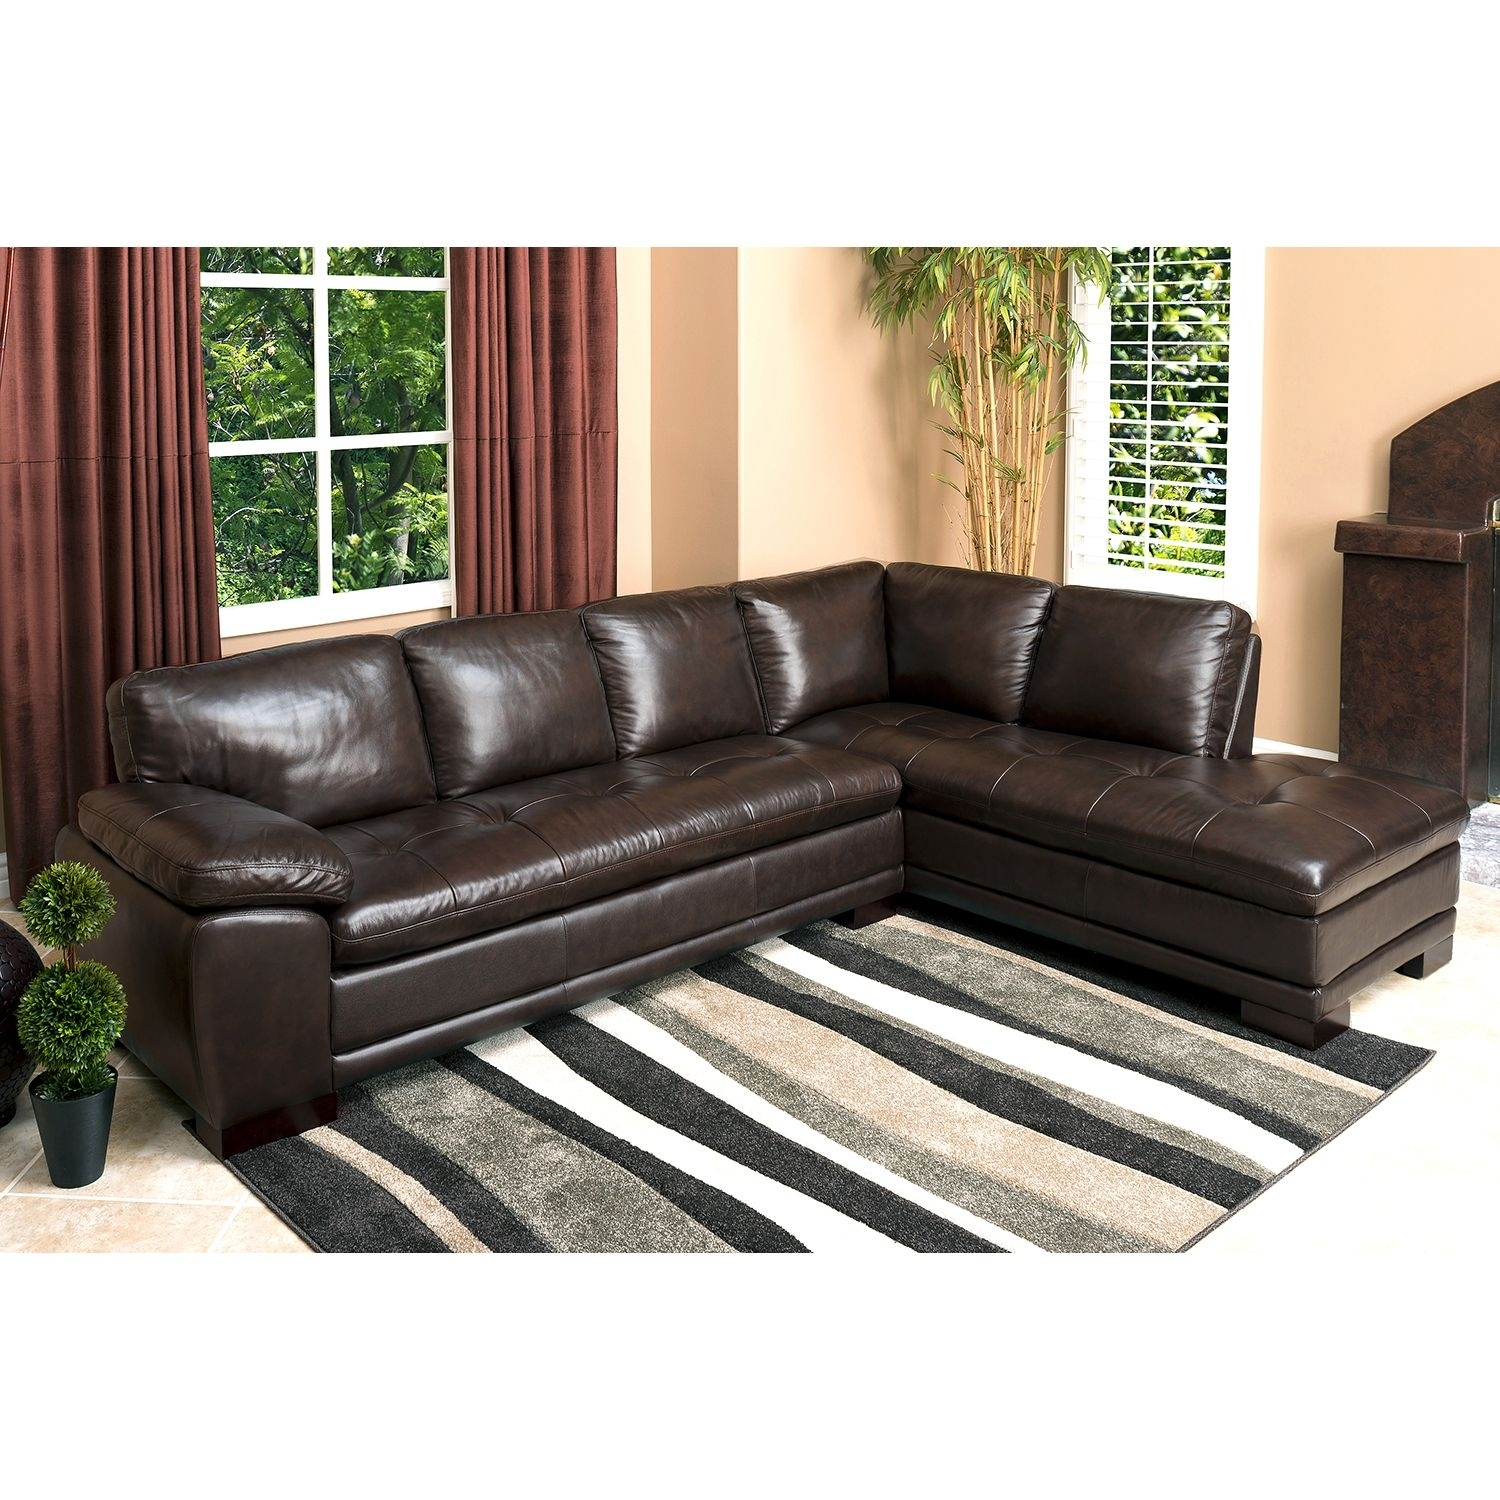 Westbury Top Grain Leather Sectional – Sam's Club | Sectionals With Regard To Sams Club Sectional Sofas (View 5 of 10)